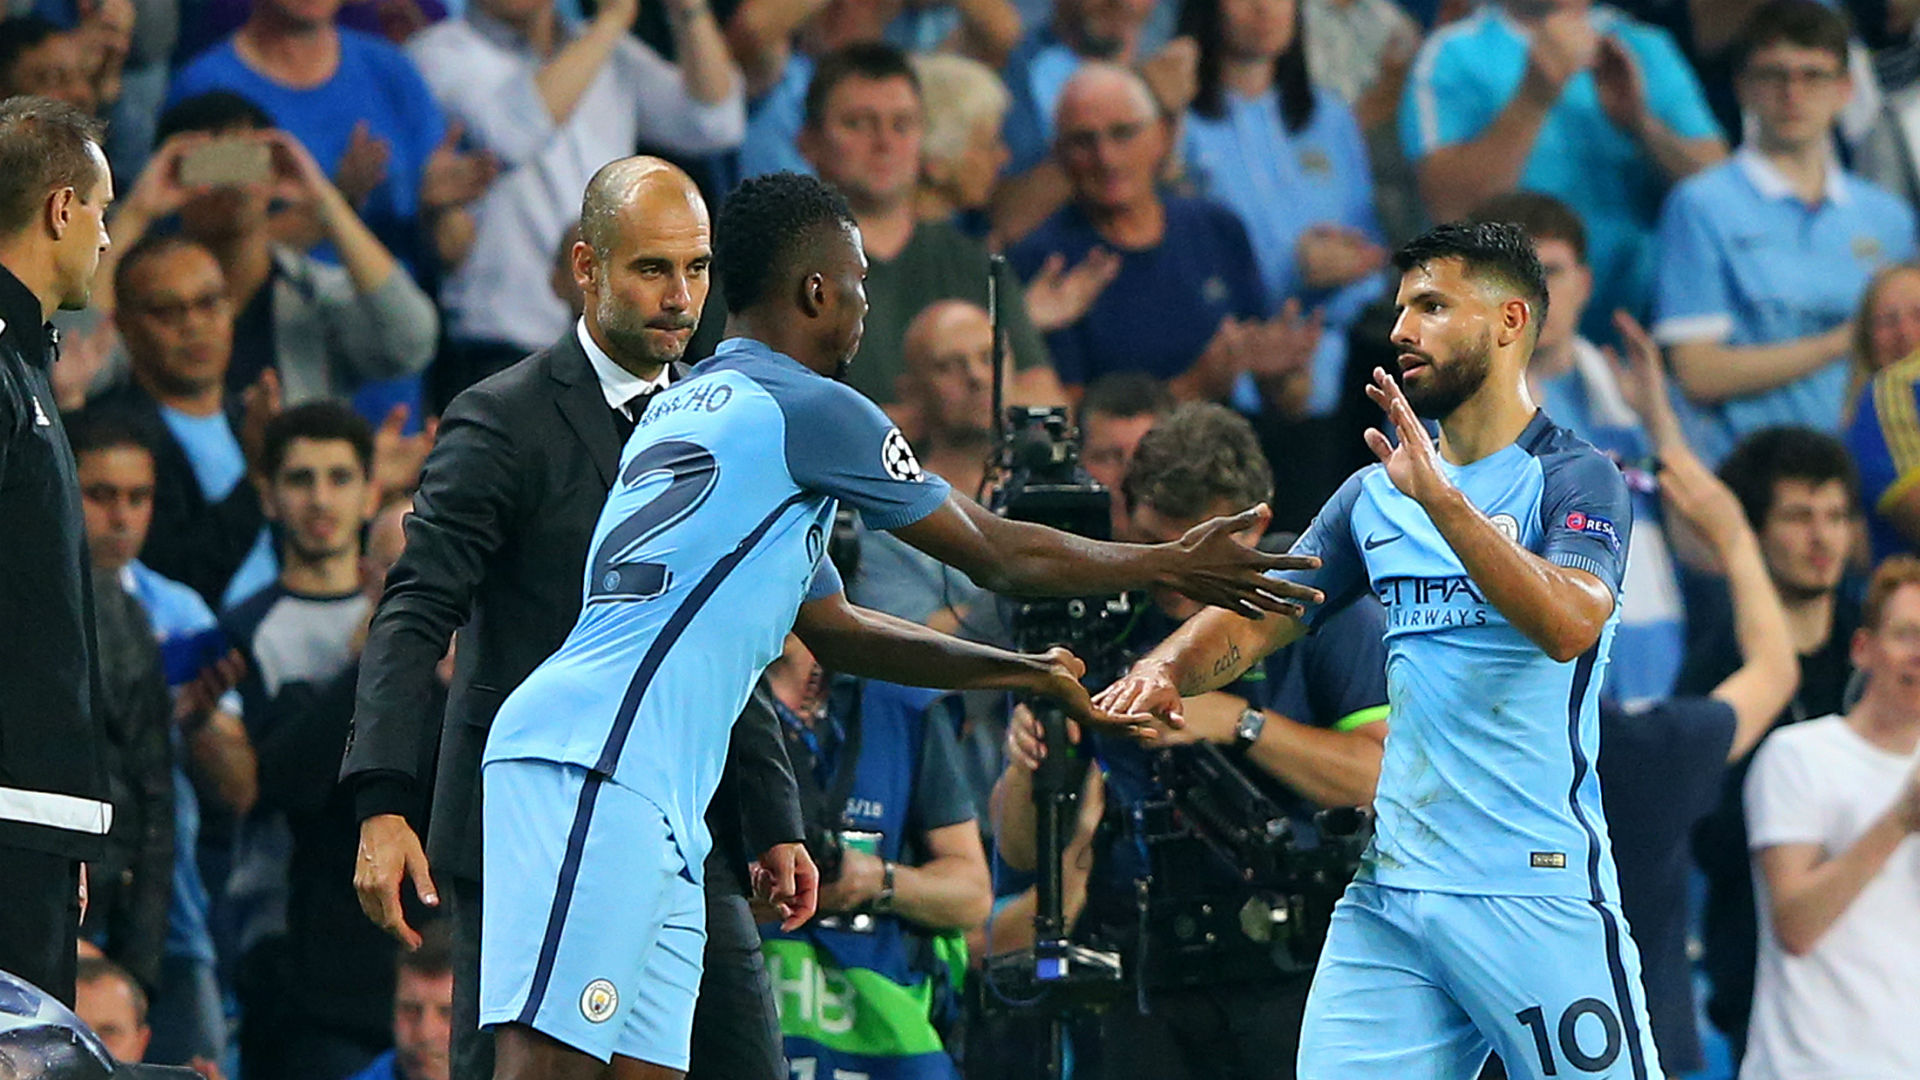 Sergio Aguero 'seeking talks with Pep Guardiola over Manchester City future'